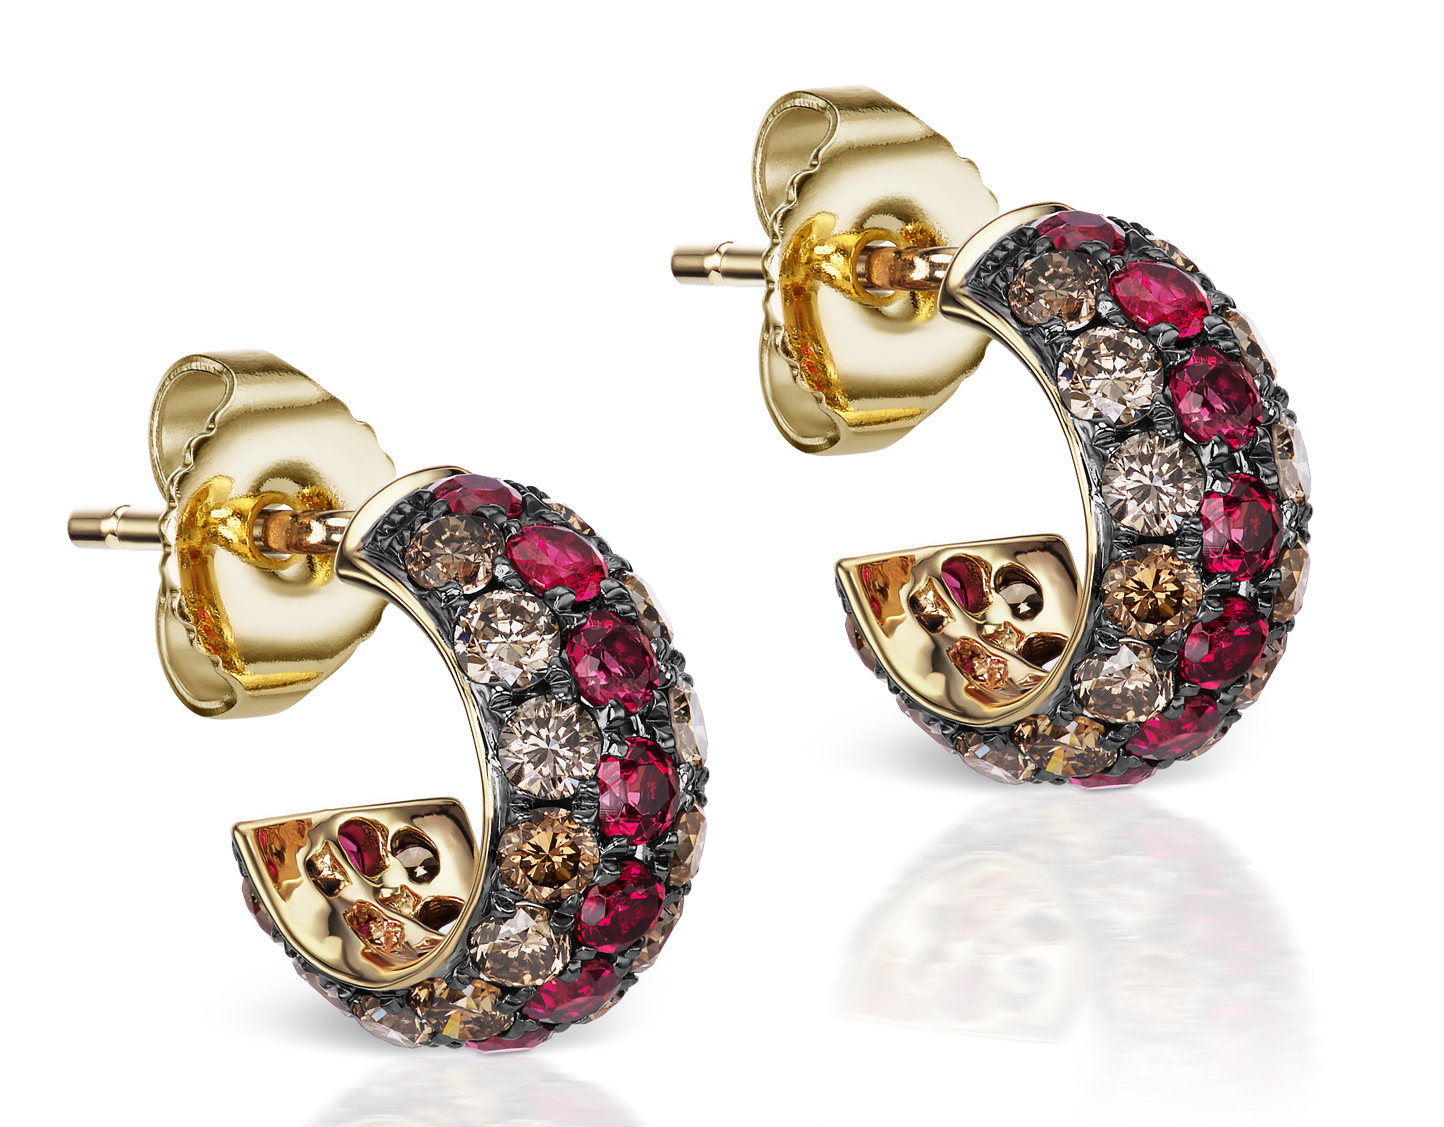 Jane Taylor Jewelry brown diamond and spinel huggie earrings | JCK On Your Market